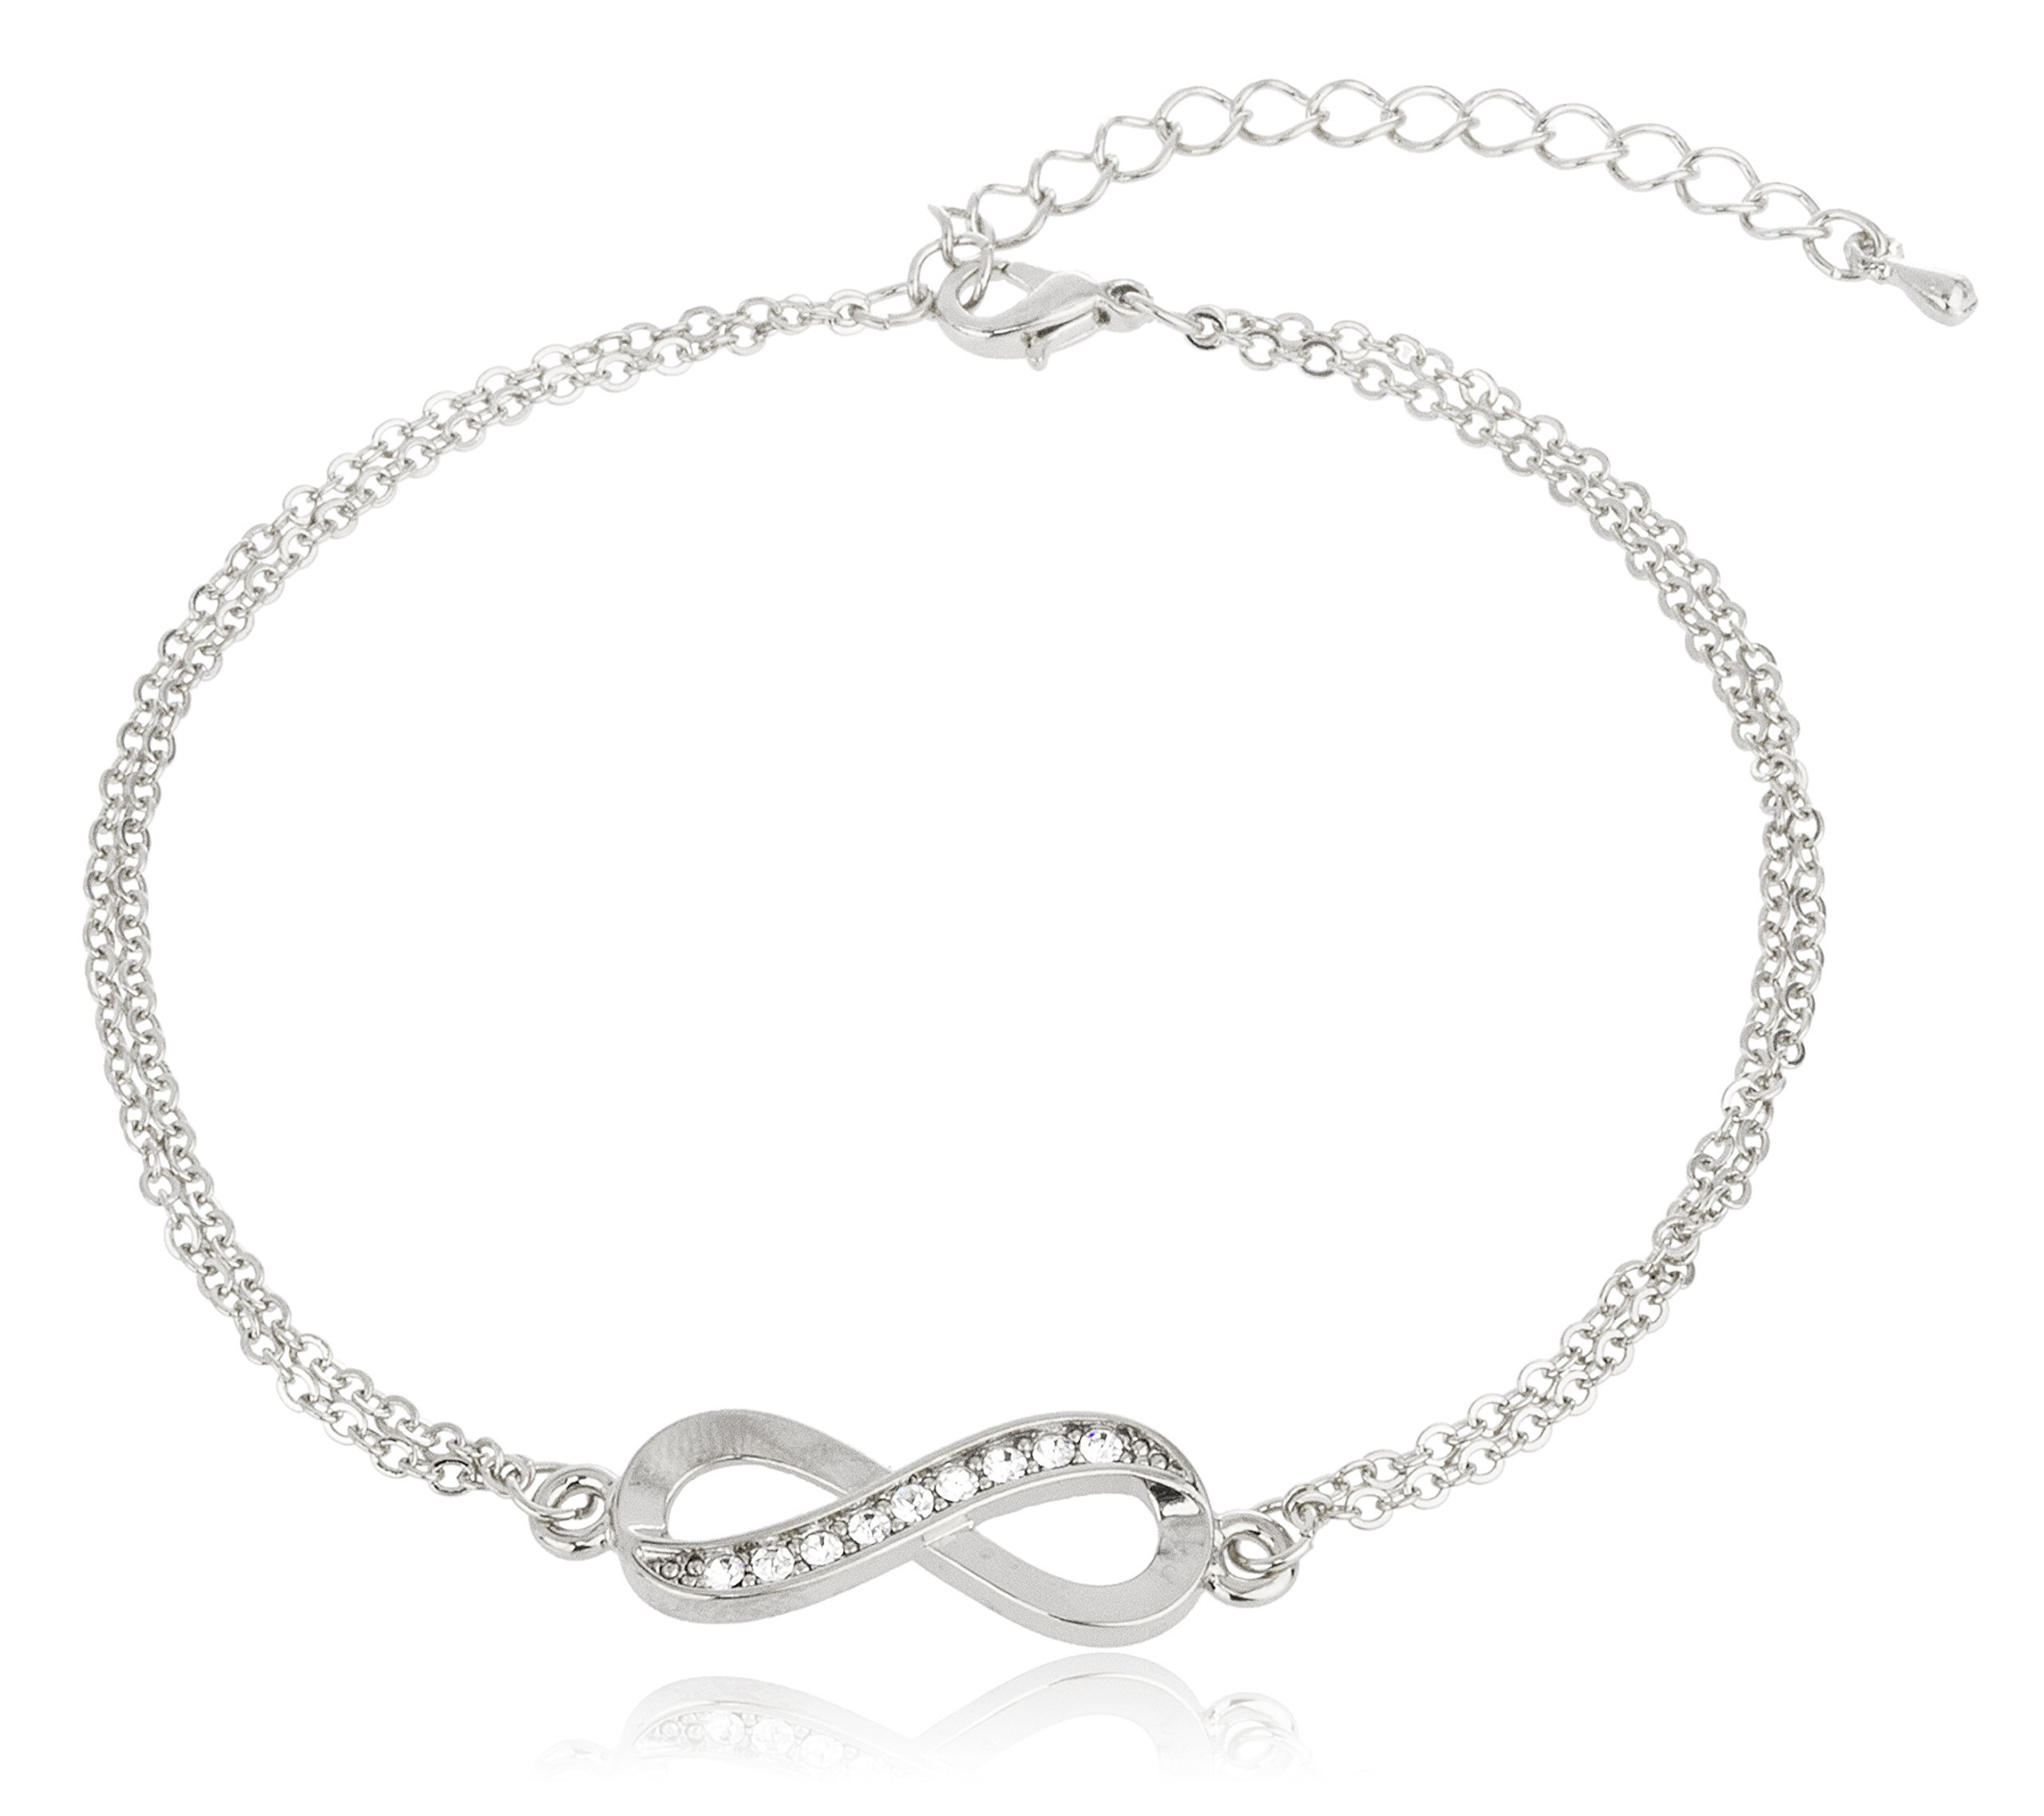 Silvertone Infinity Adjustable Charm Anklet with Stones (J-898)